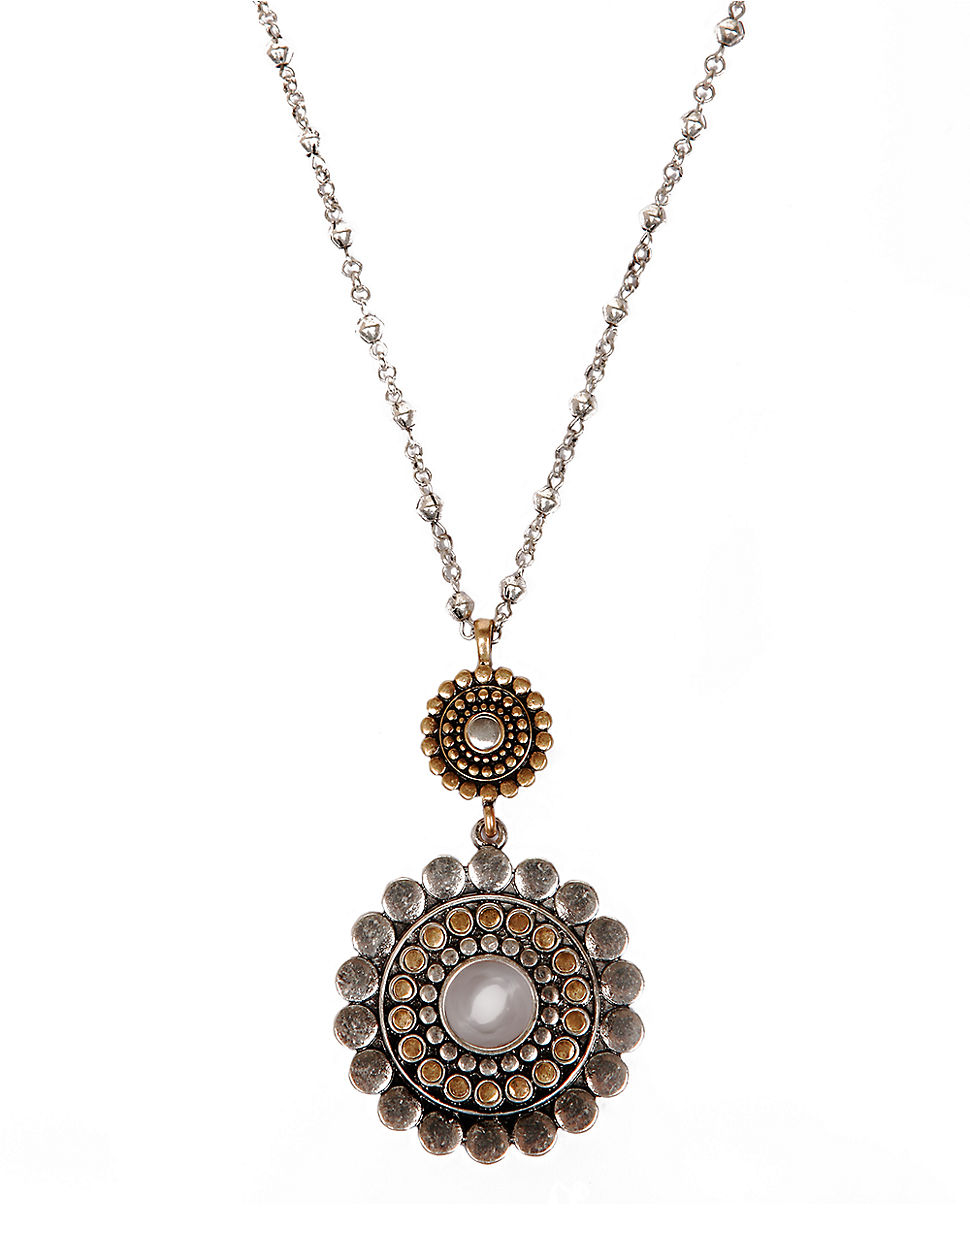 Lyst - Lucky brand Bali Two-tone Double Pendant Necklace in Metallic